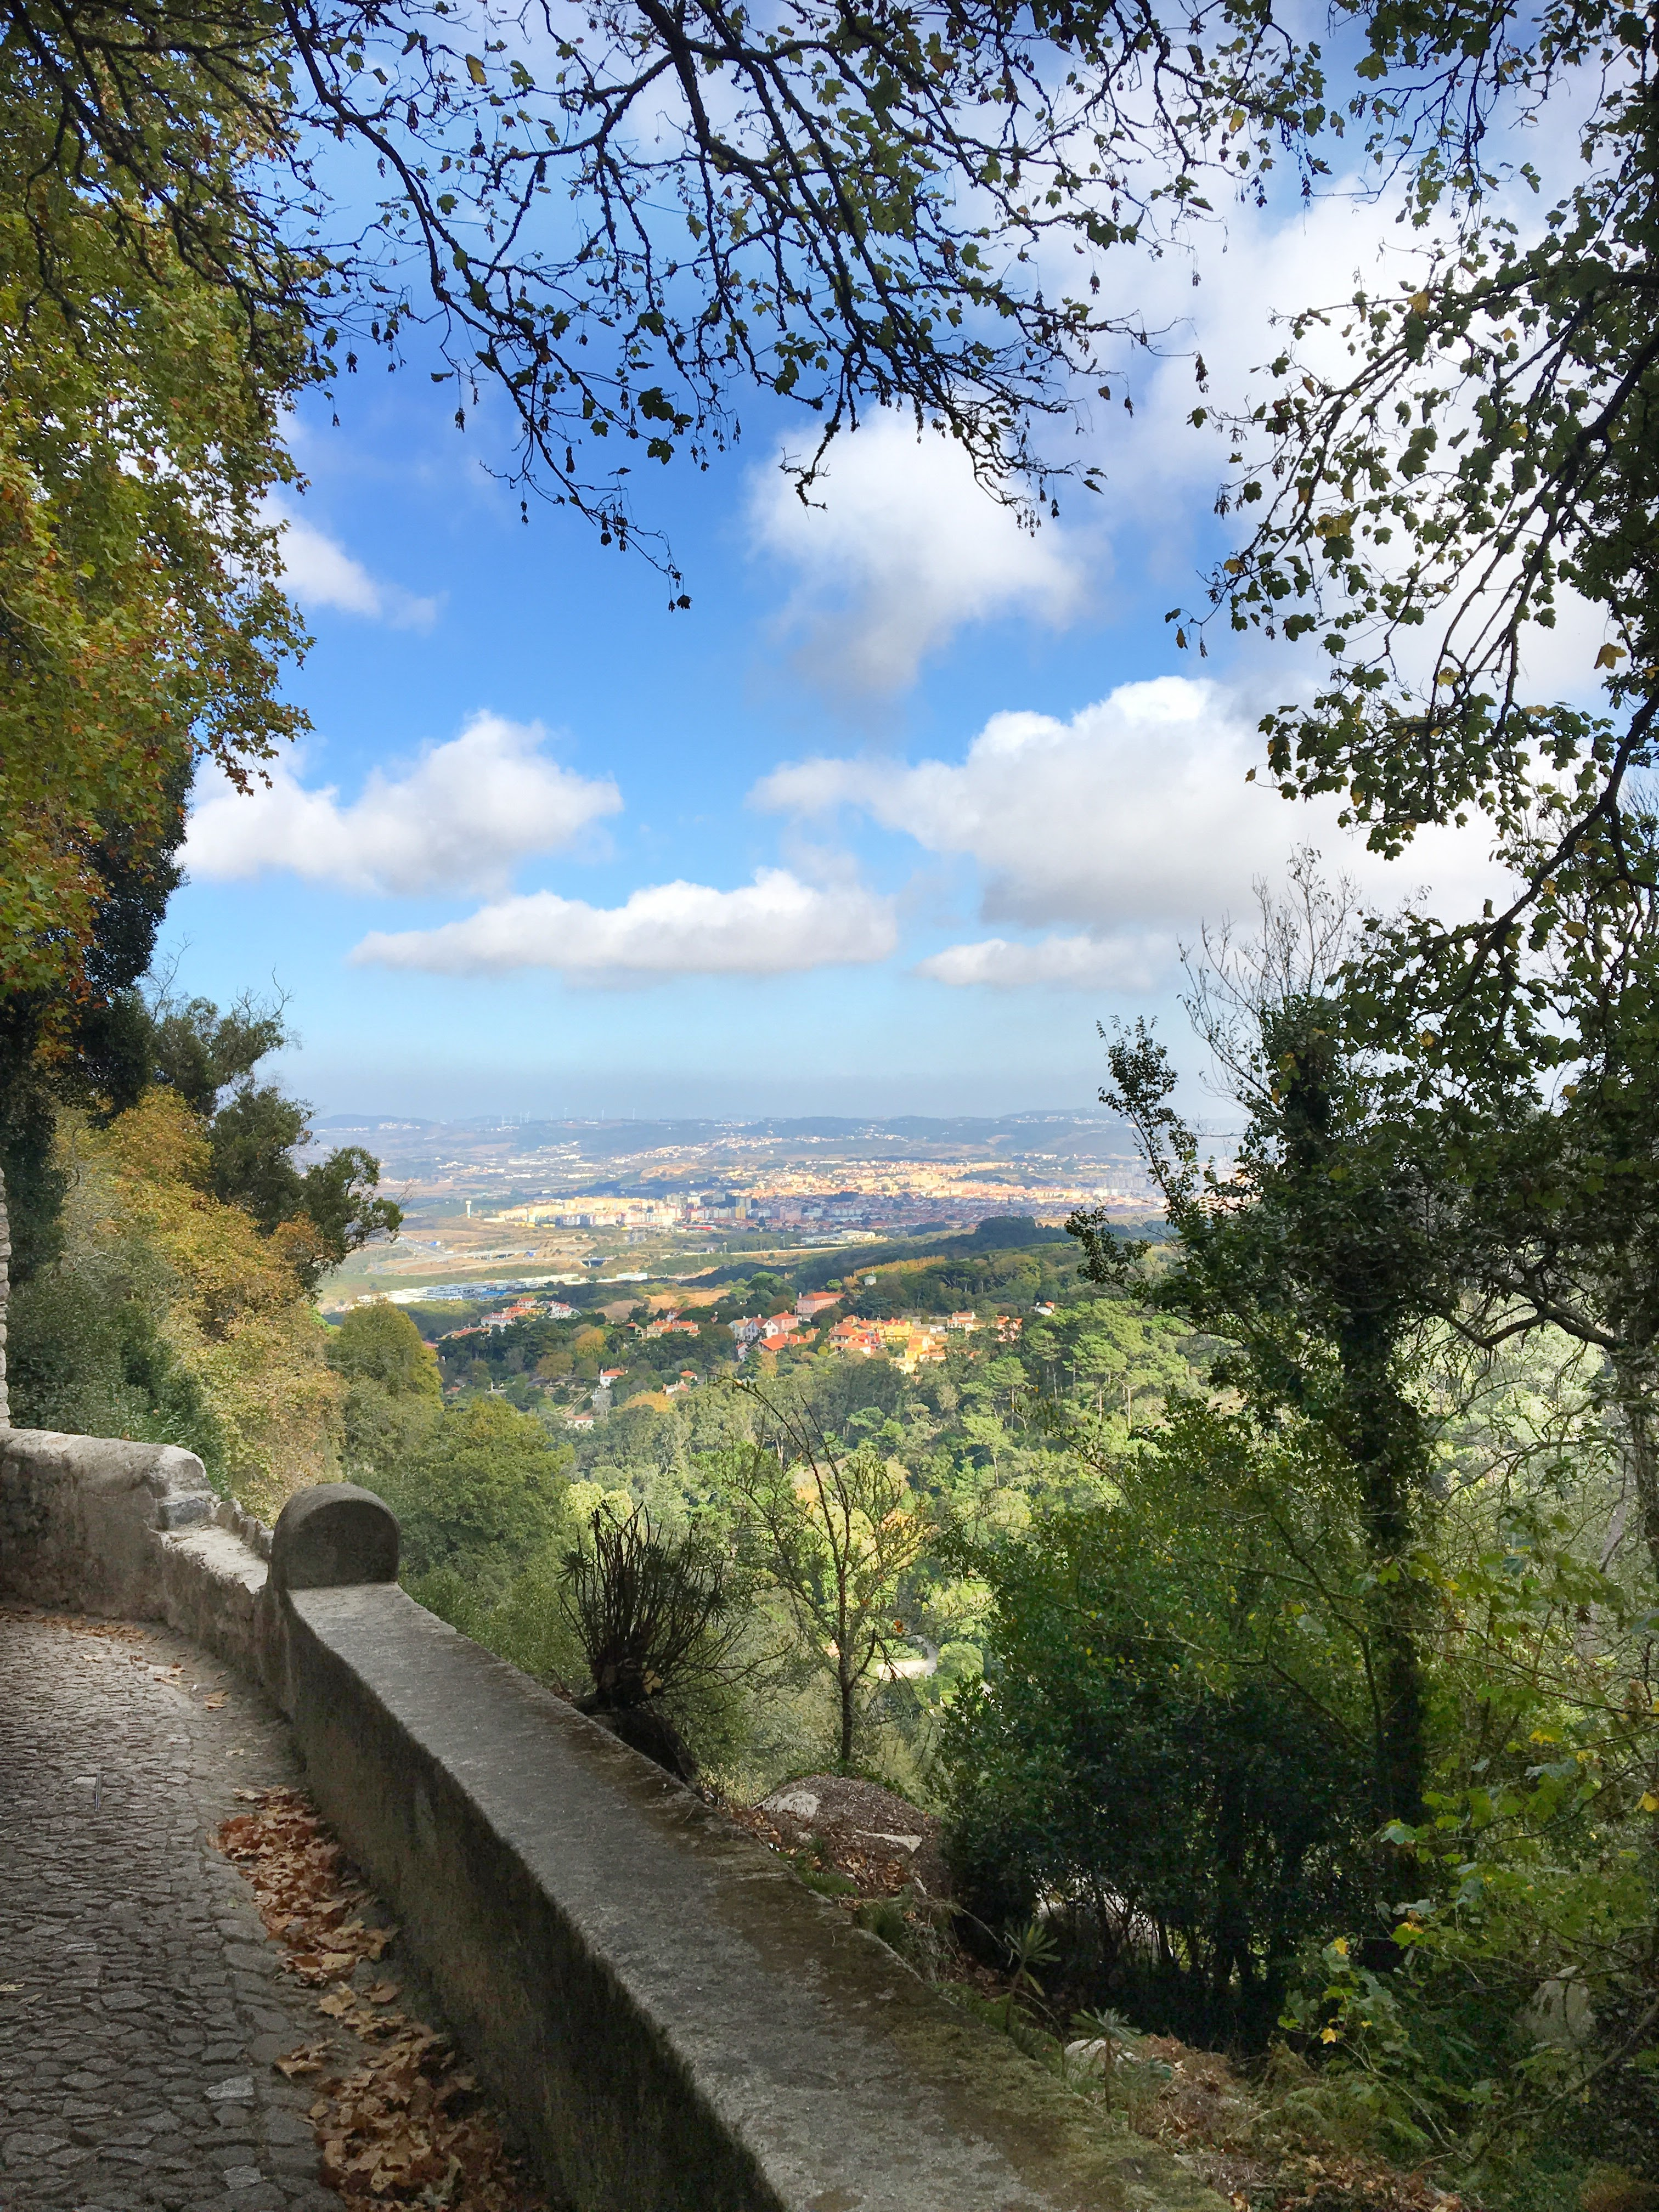 Panoramic view from the grounds of the Moorish Castle in Sintra, Portugal